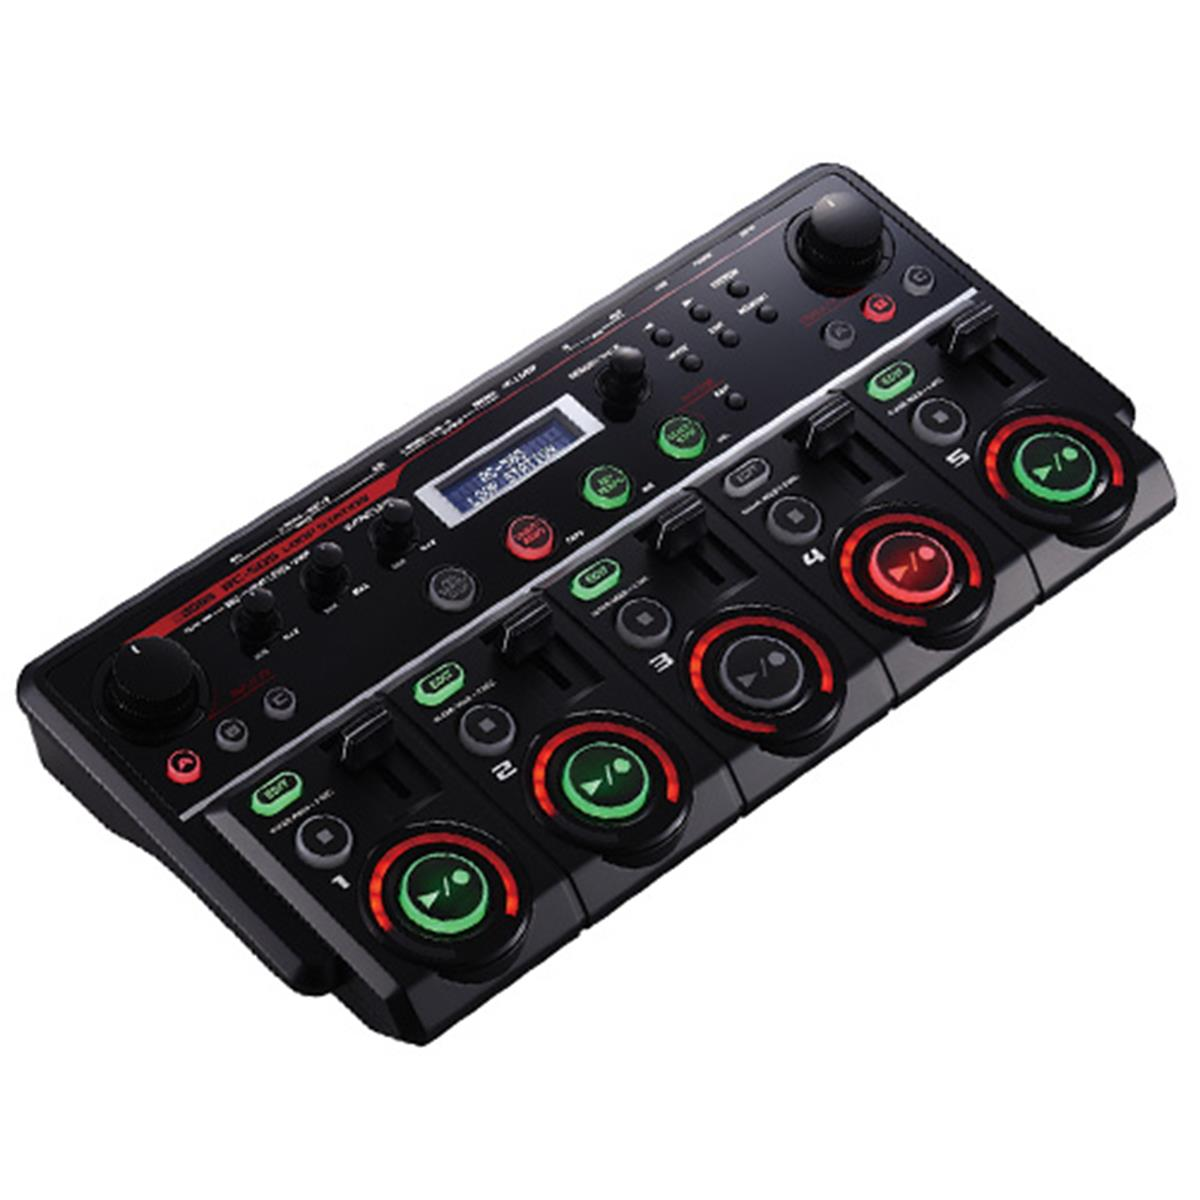 BOSS RC 505 LOOPSTATION TABLETOP